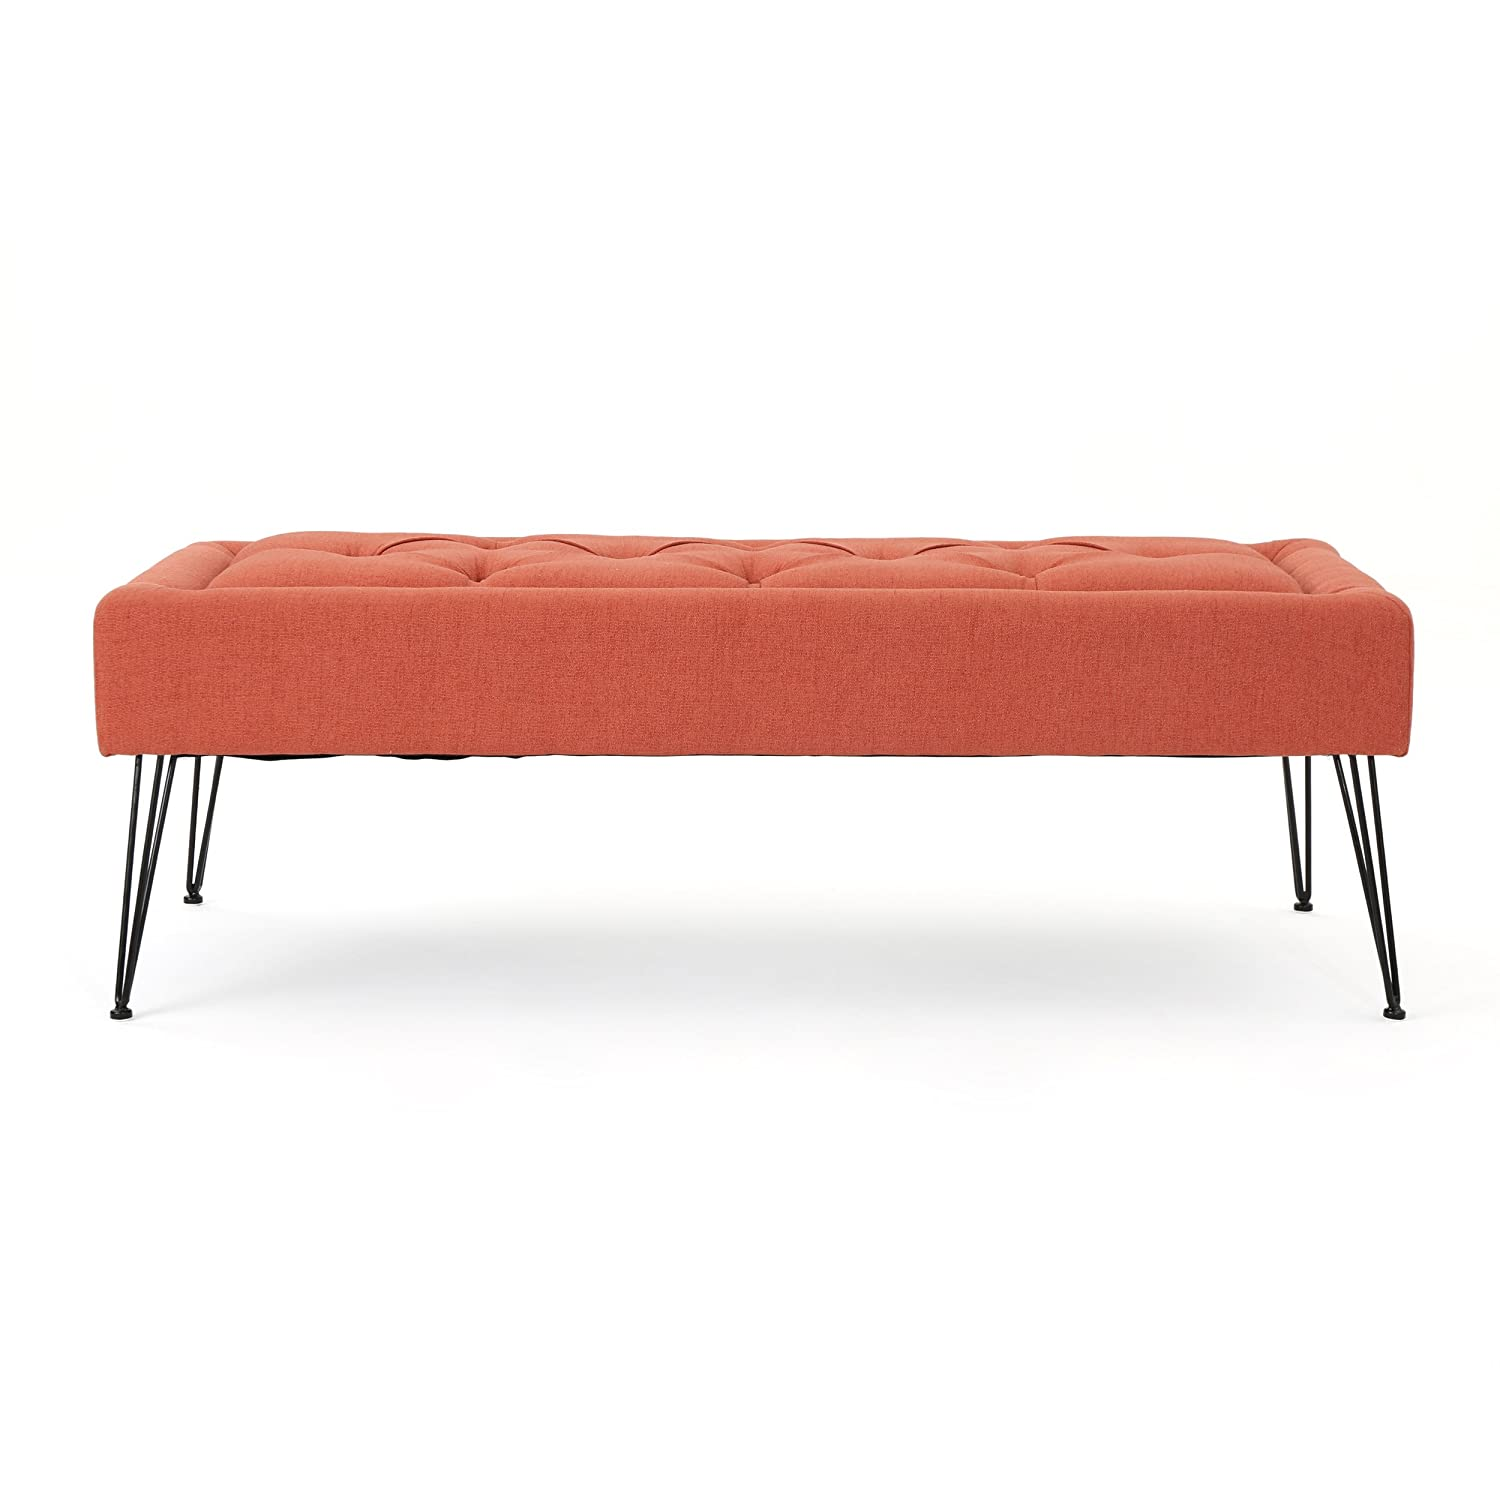 Christopher Knight Home 303232 Zyler Tufted Dark Salmon Fabric Ottoman,